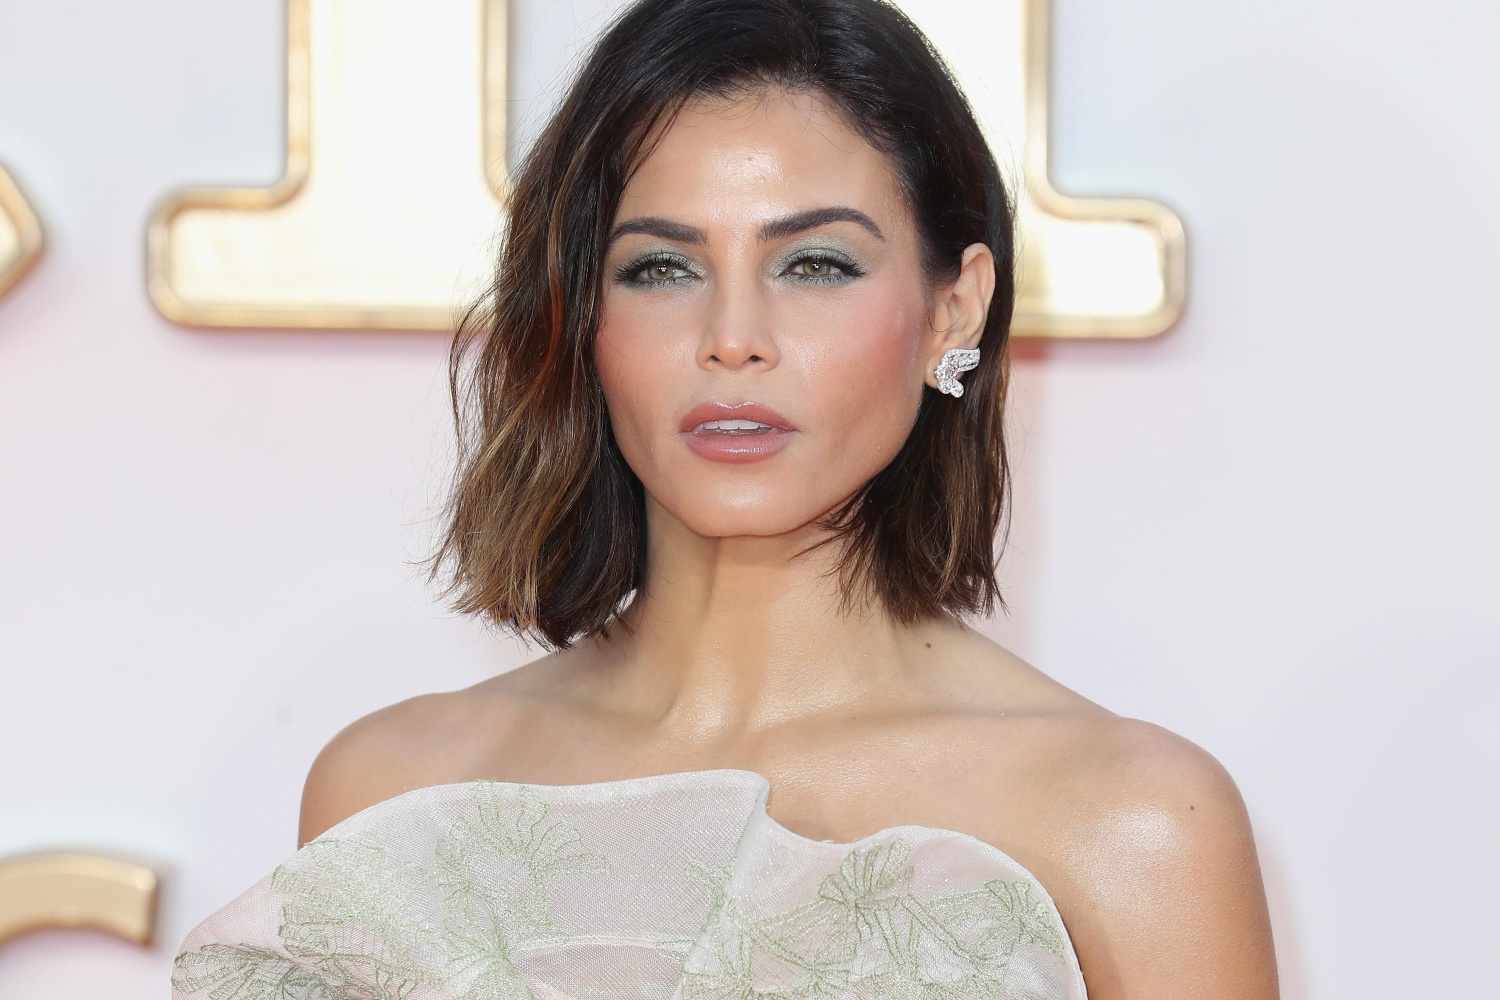 Jenna Dewan Receives Humanitarian of the Year Award from St. Jude